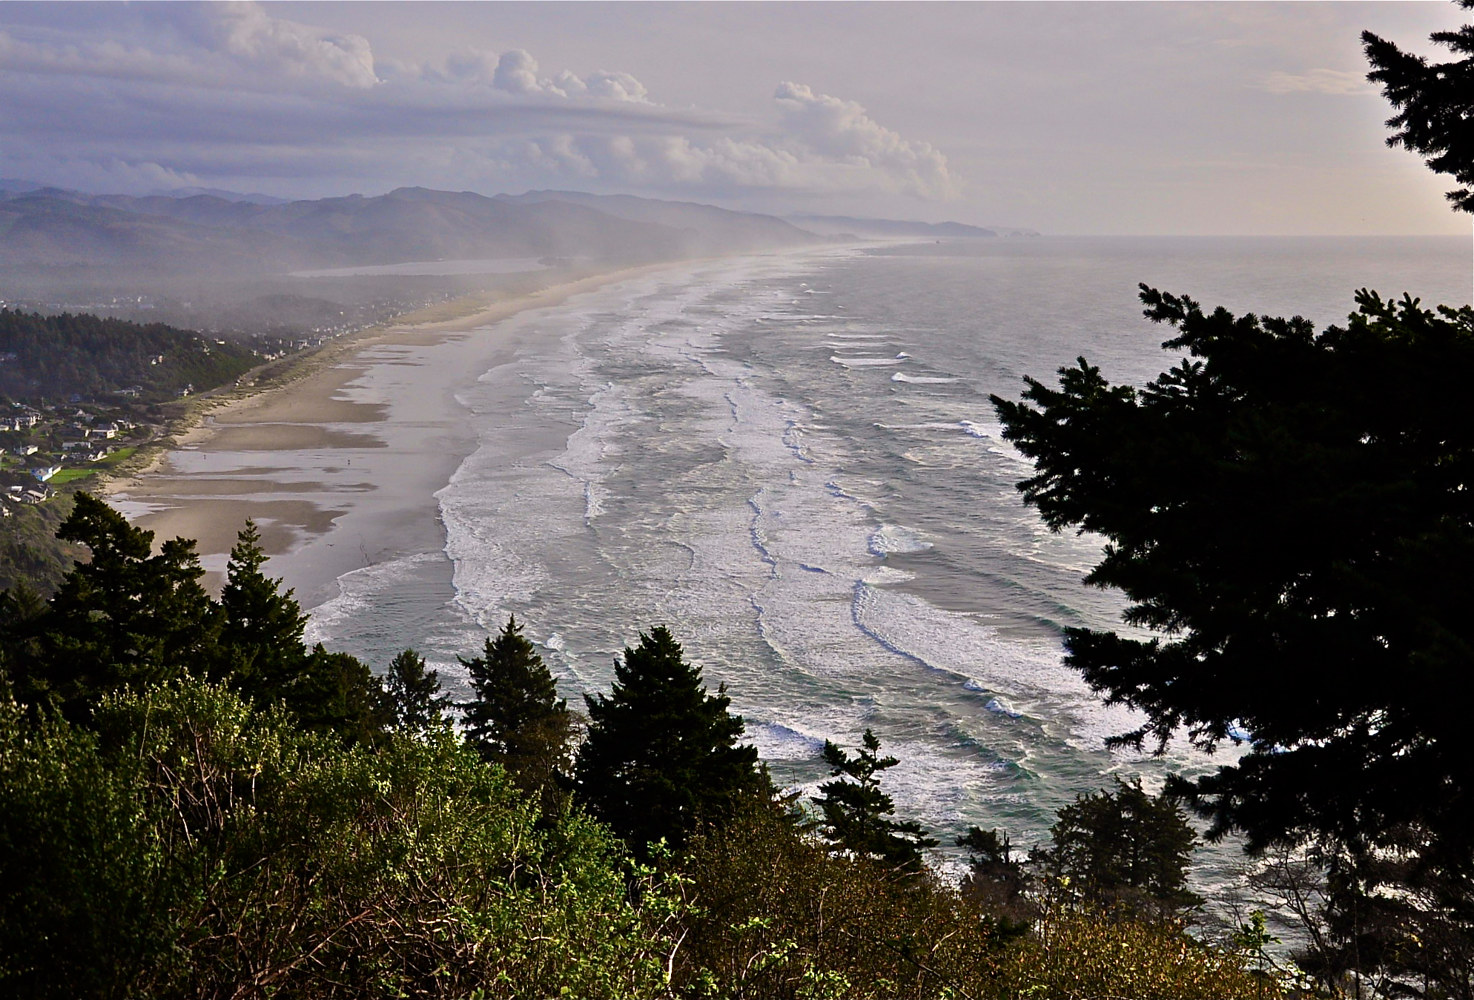 NORTHERN OREGON COAST by Joeann Edmonds-Matthew